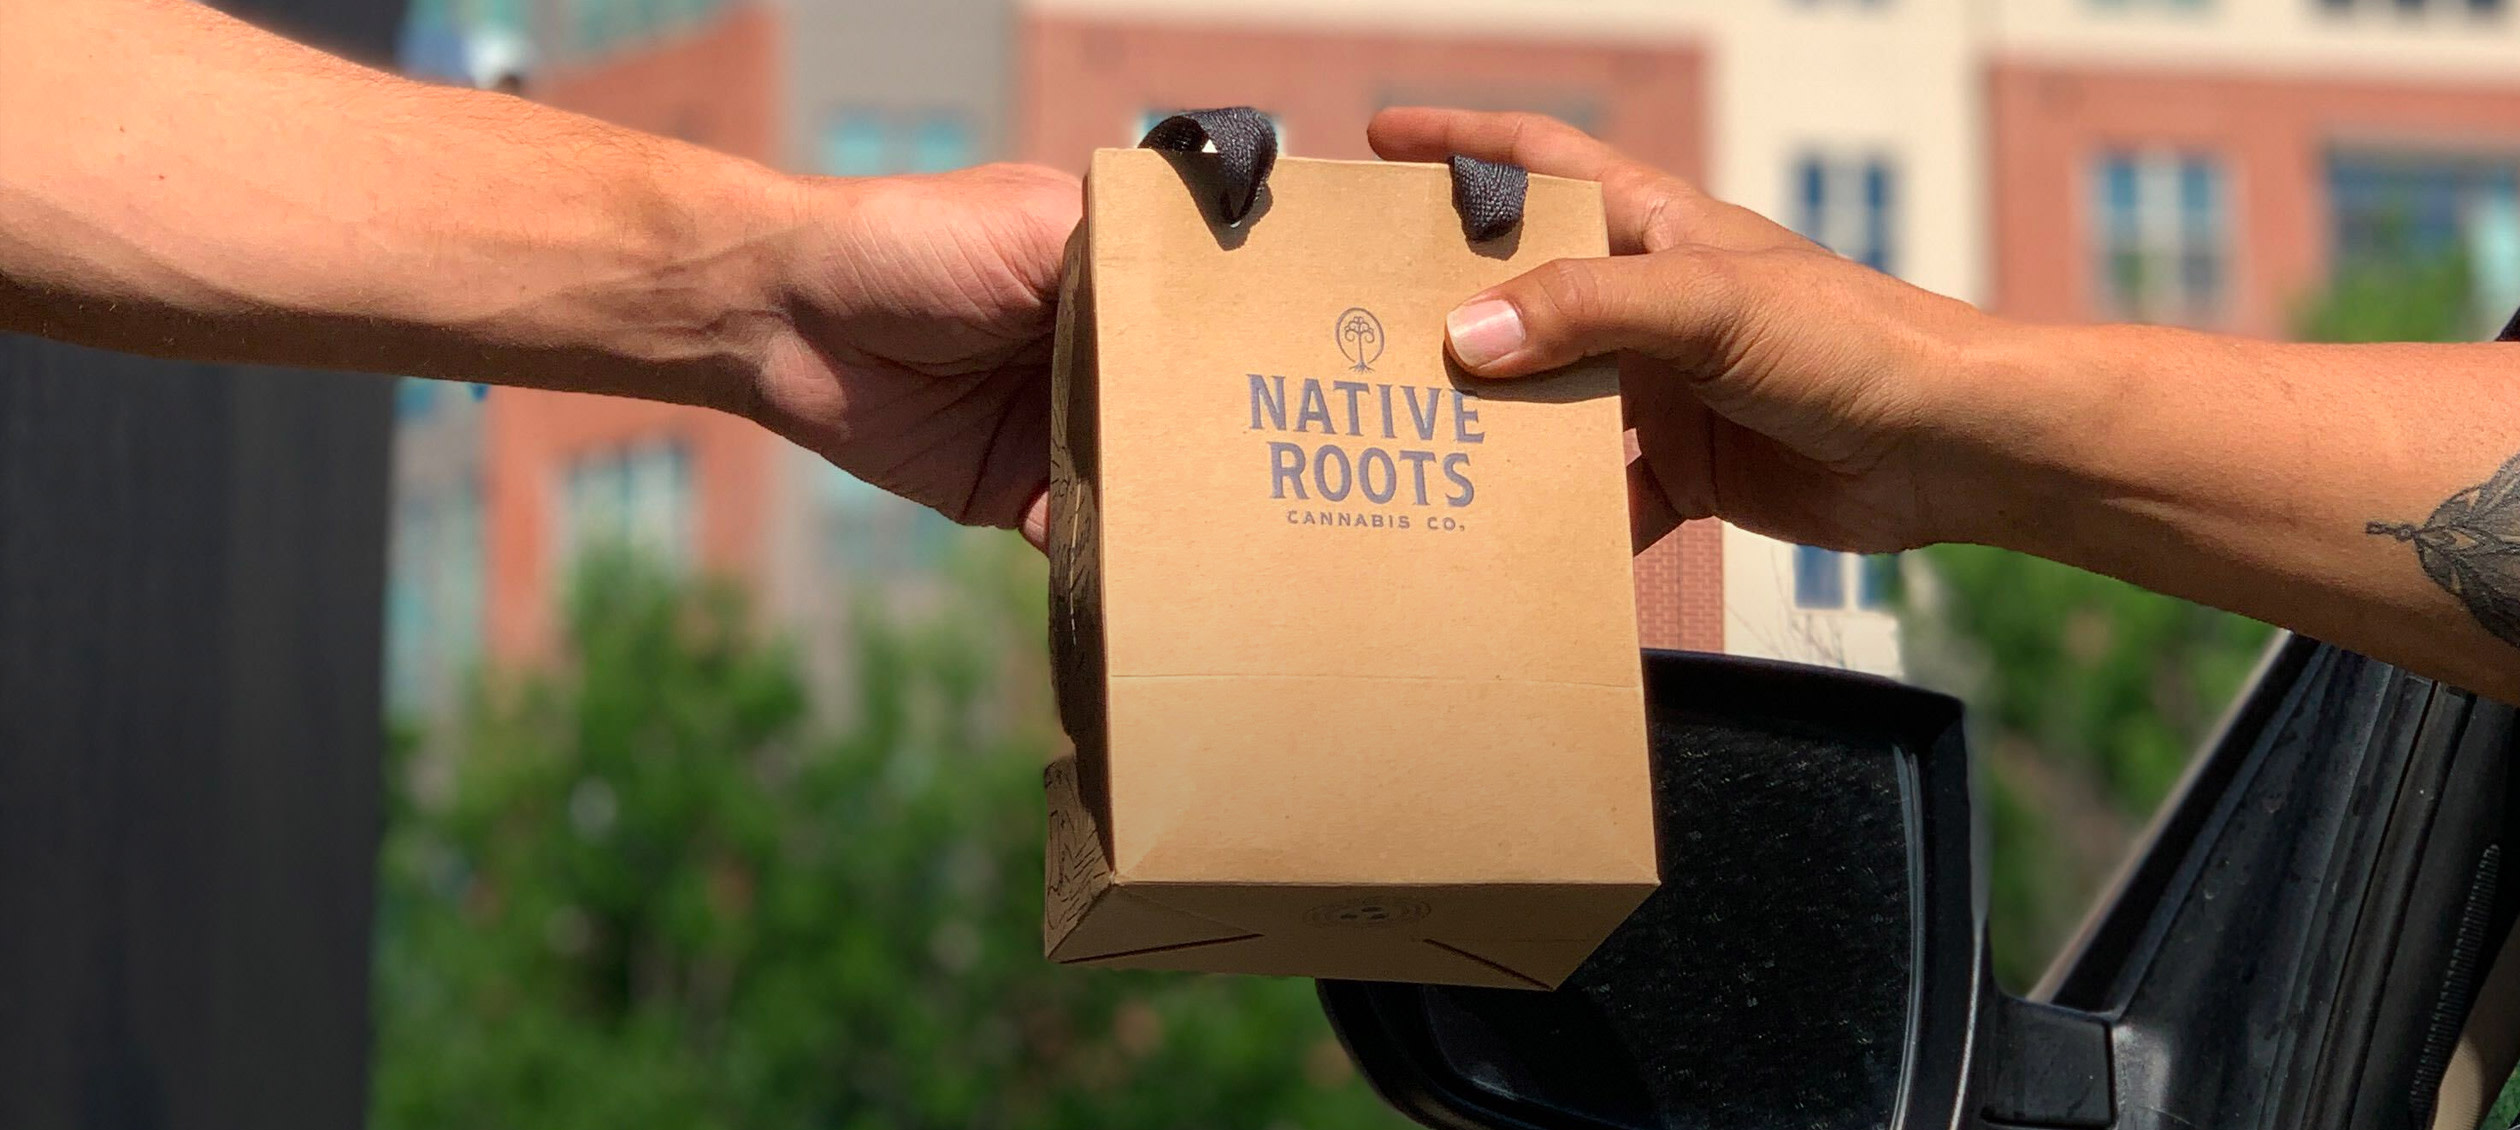 Native Roots Drive Thru Order being fullfilled